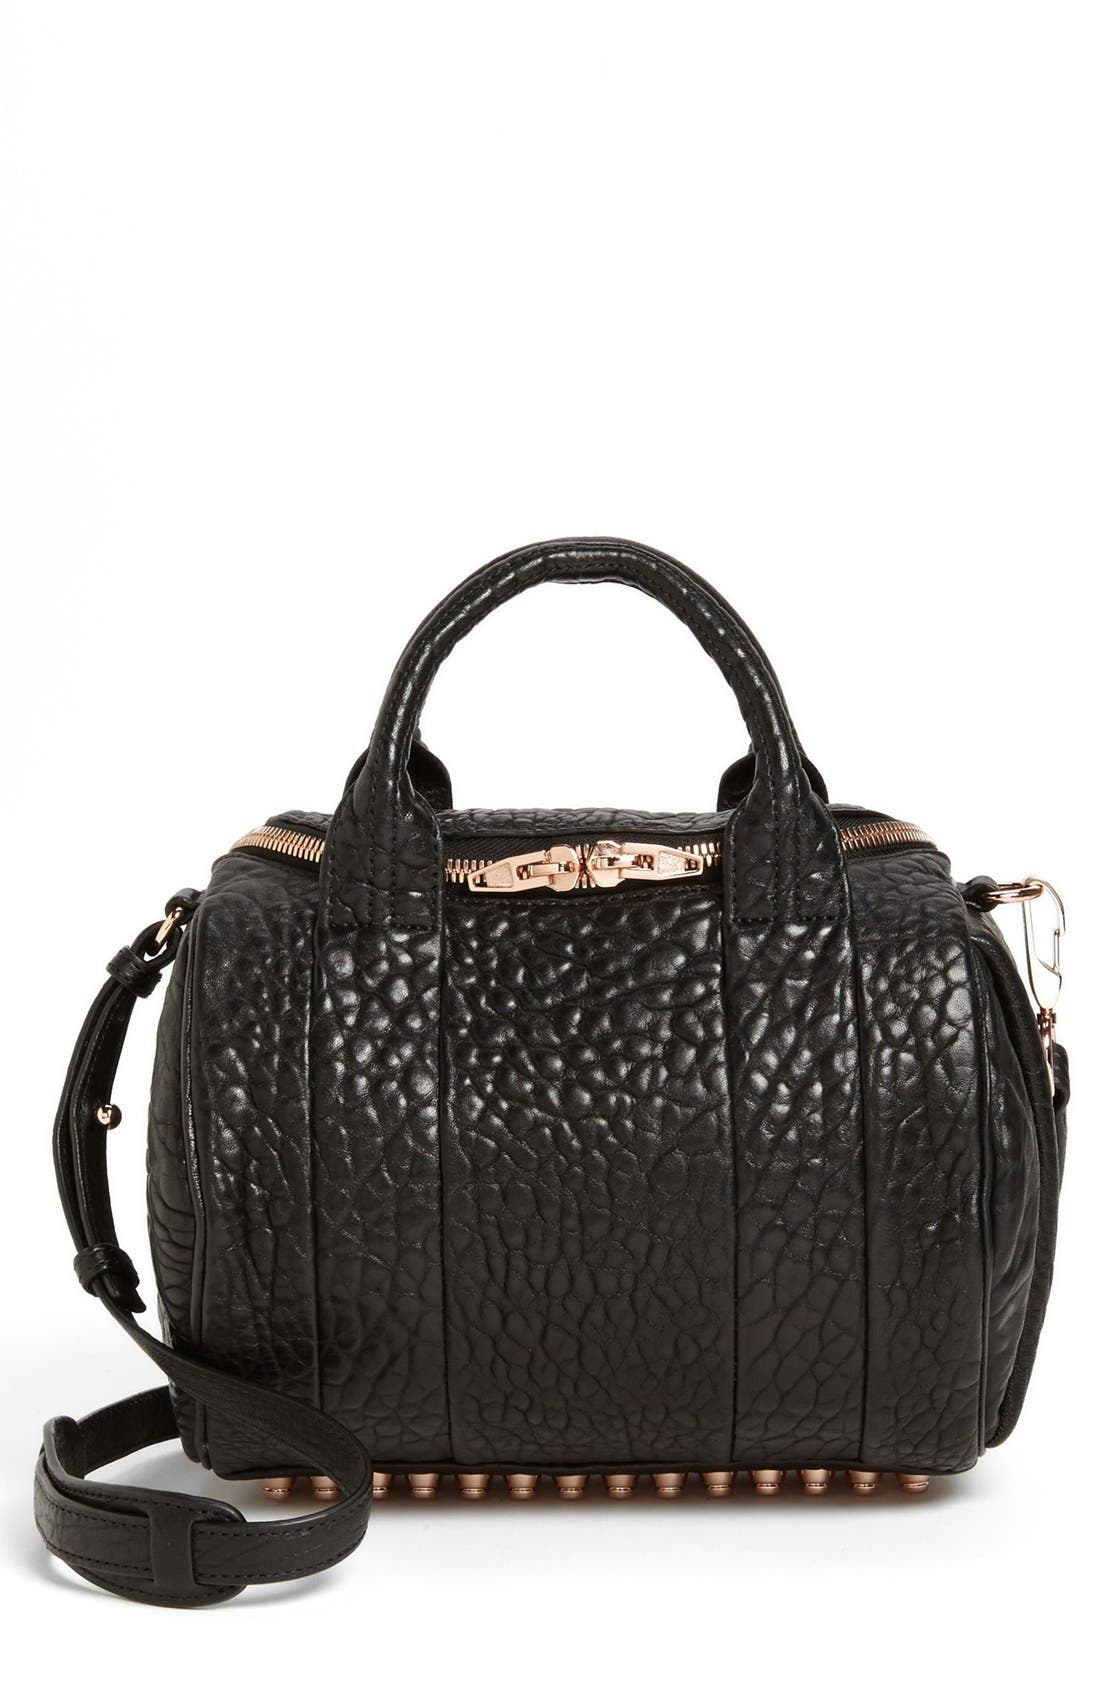 'Rockie - Rose Gold' Leather Crossbody Satchel,                             Main thumbnail 1, color,                             Black Rose Gld Hrdwre